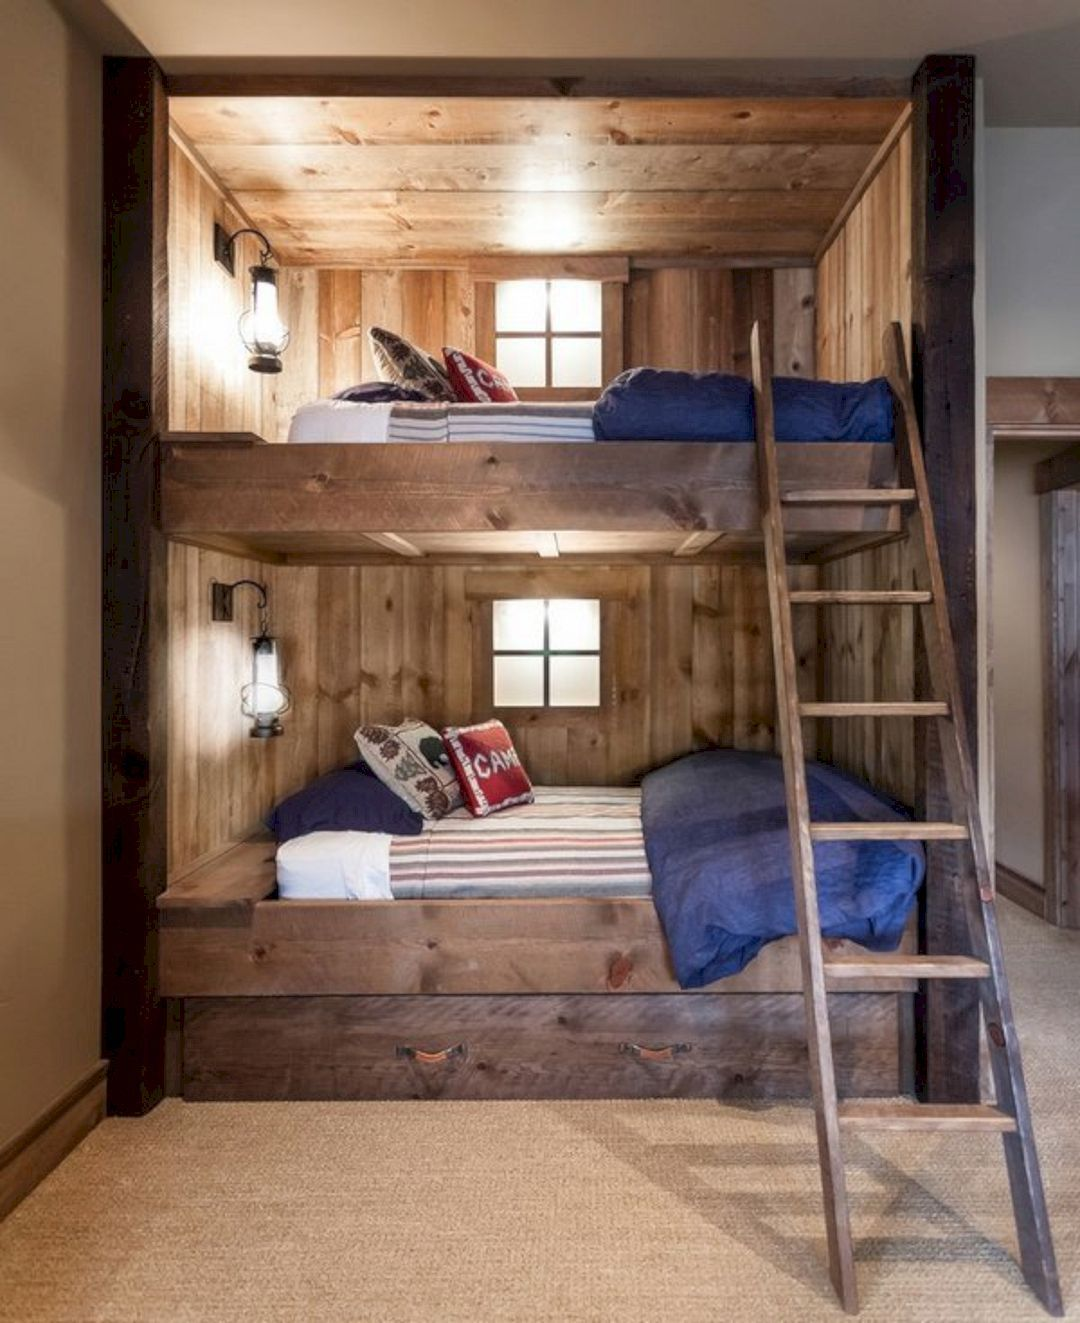 Small loft bed ideas   Top Kids Bunk Bed Design Ideas  Bunk bed designs Bunk bed and